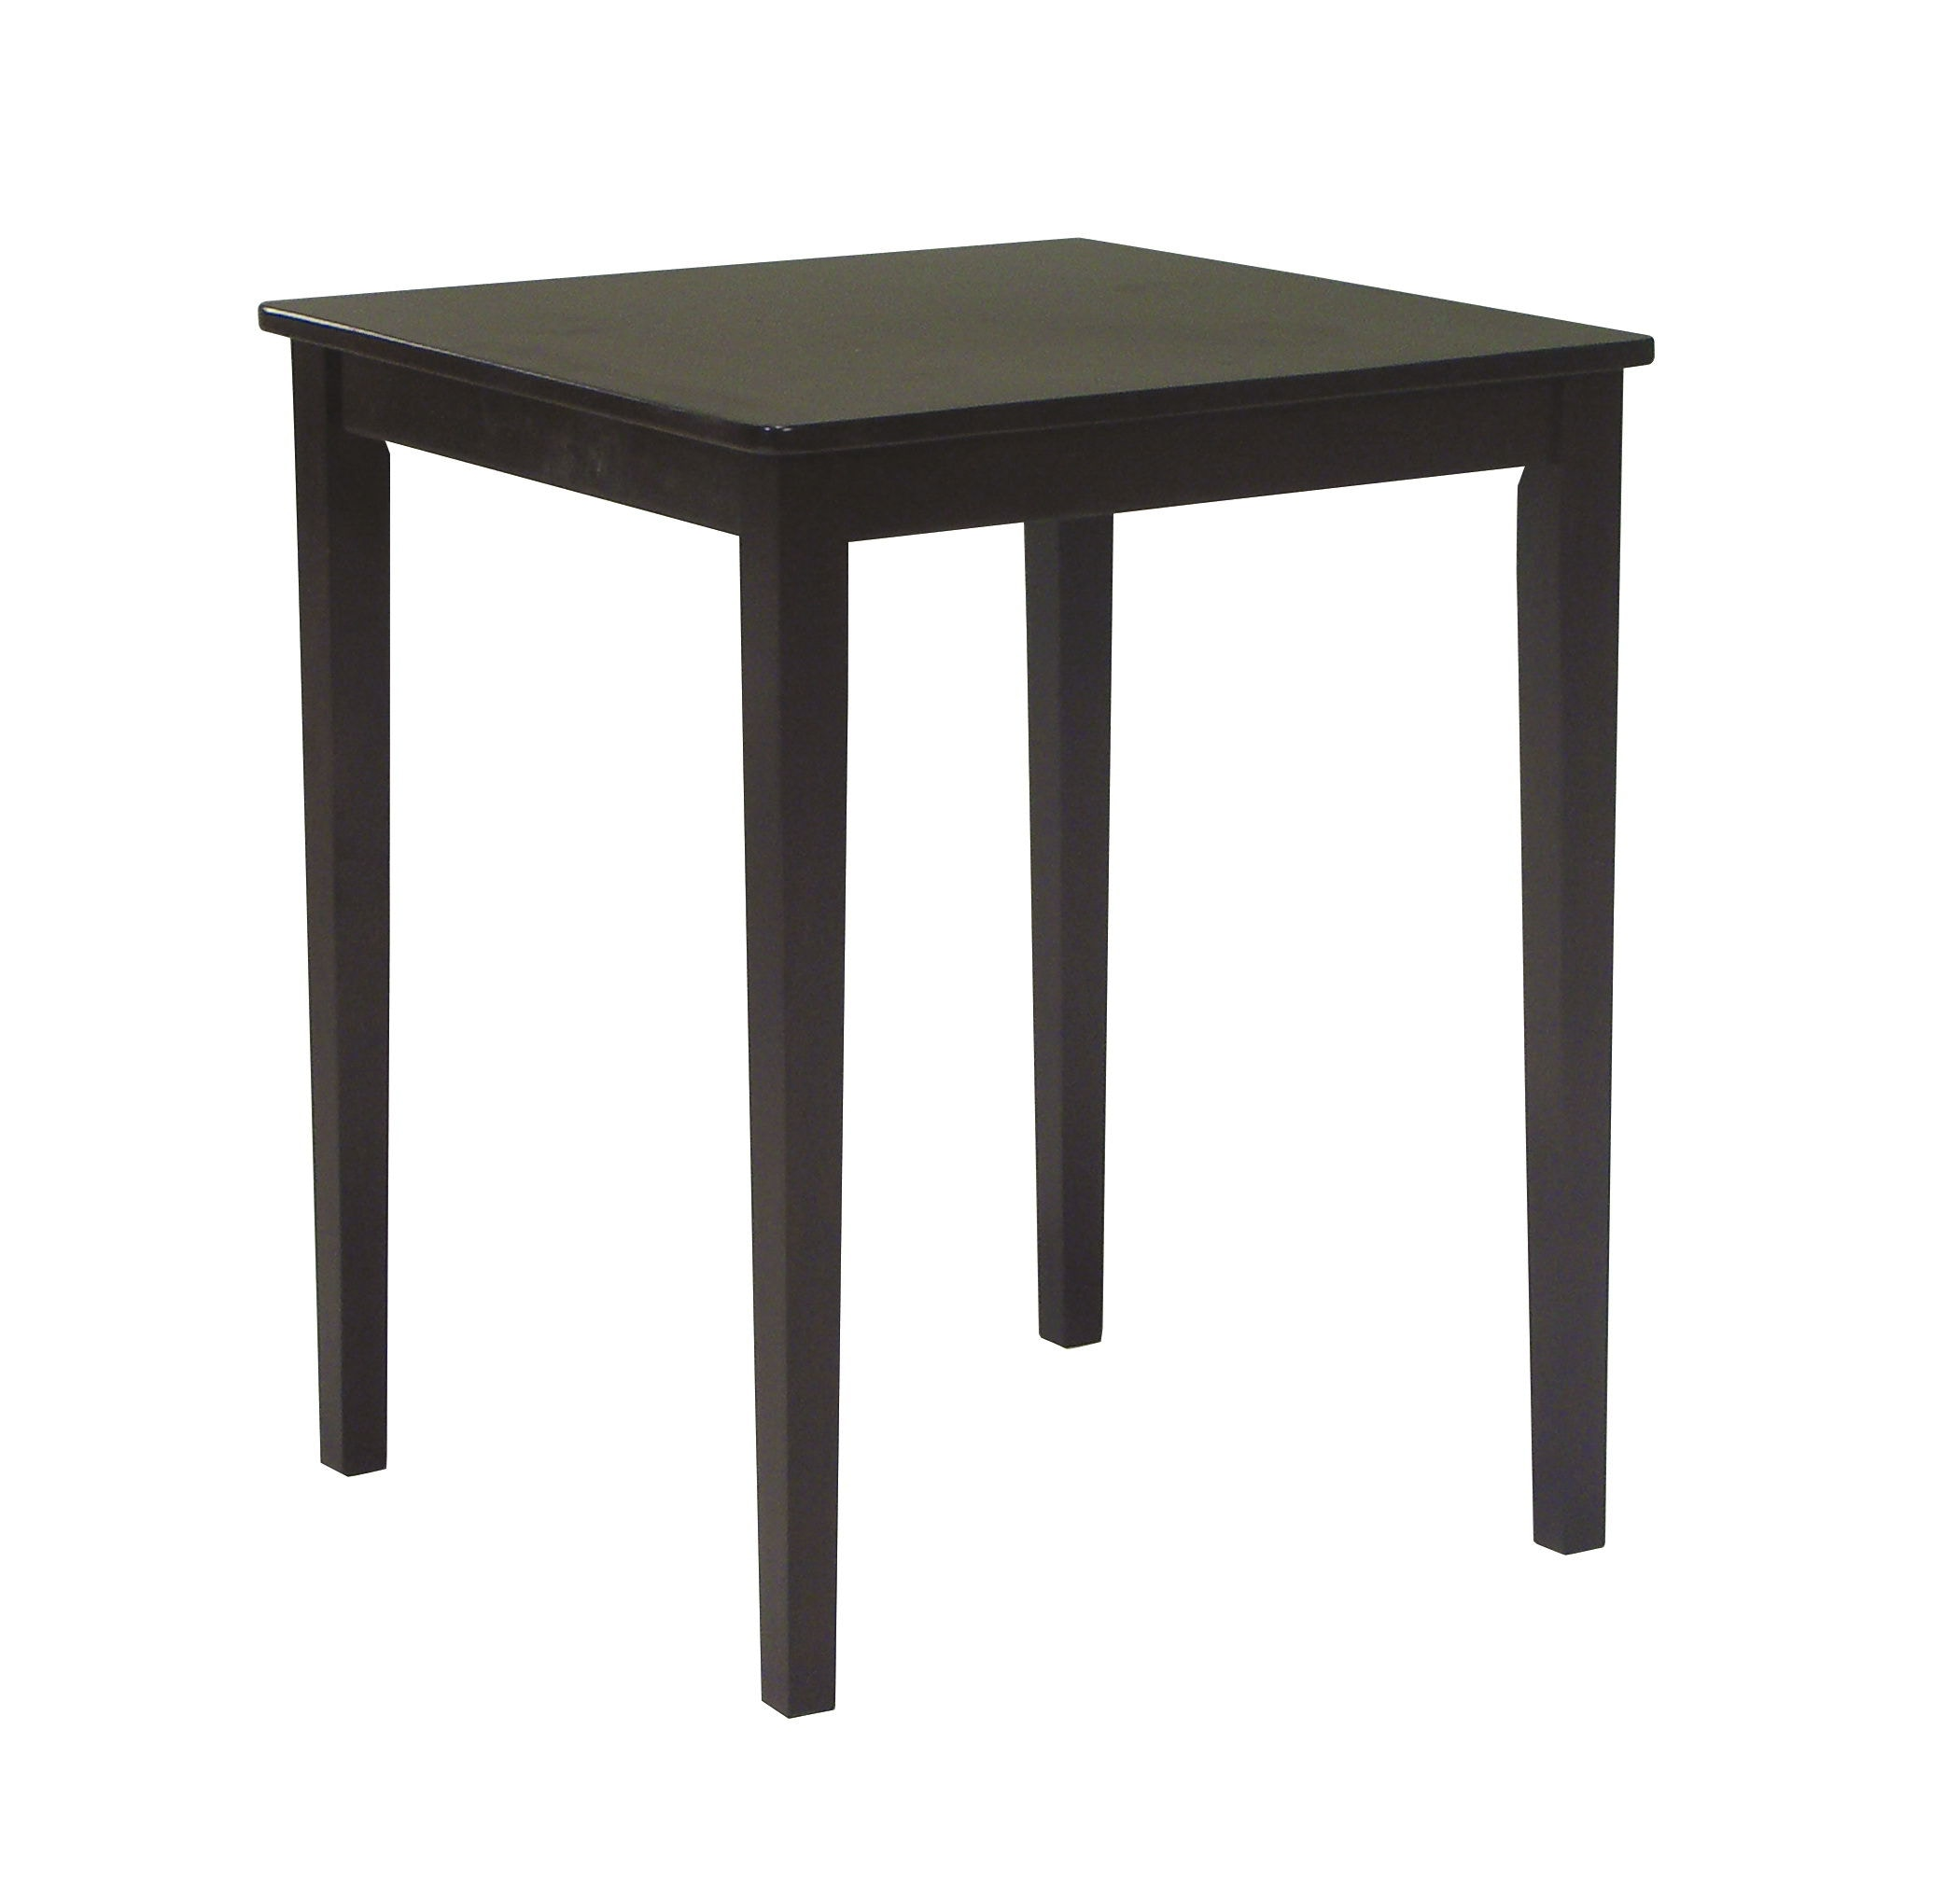 John Thomas Bar And Game Room Square Gathering Table In Rich Mocha